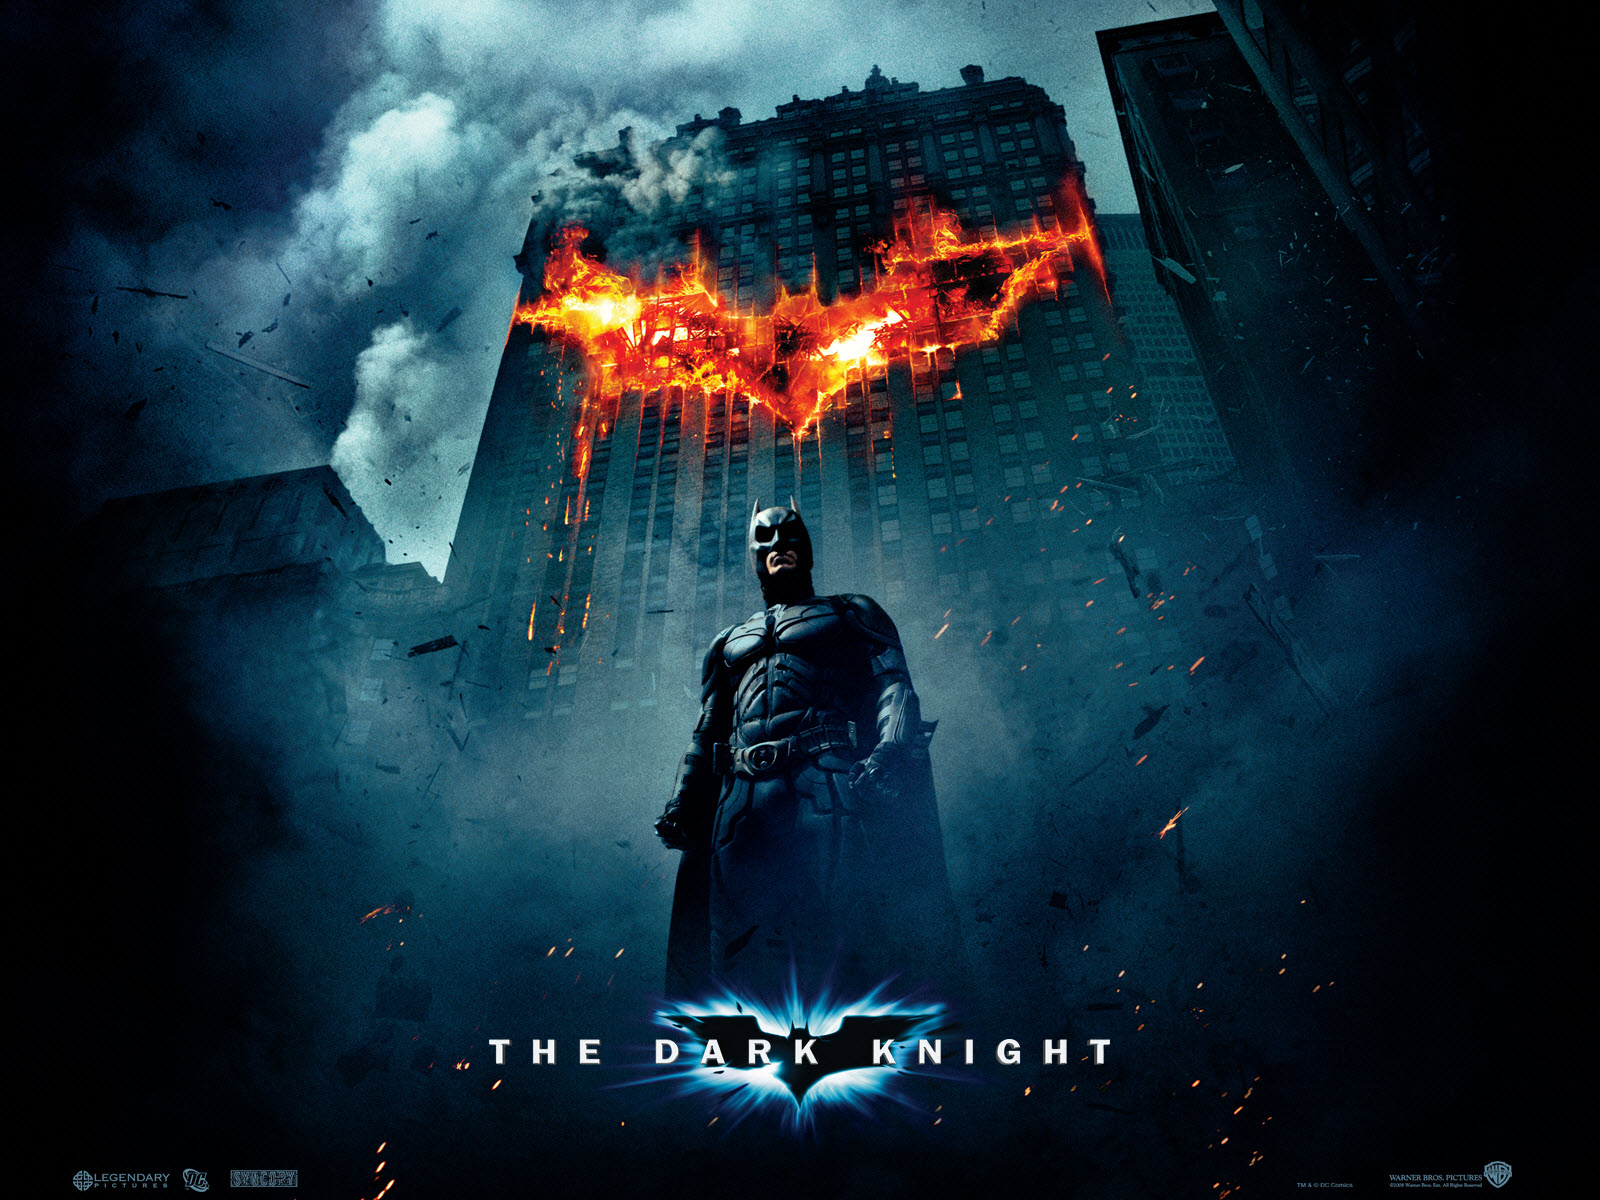 The Dark Knight Movie Wallpapers HD Wallpapers 1600x1200